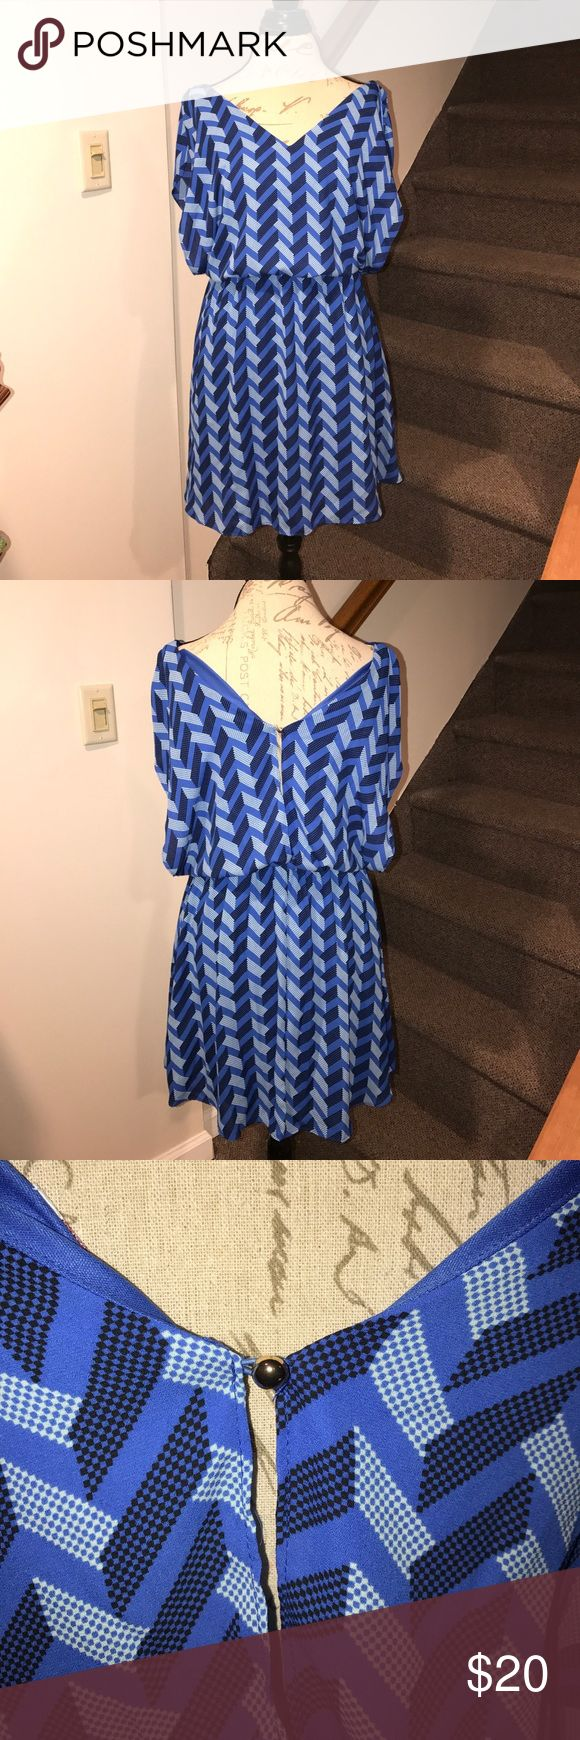 Chevron blue dress ! Show stopping blue chevron candies dress no signs of wear Candie's Dresses Midi